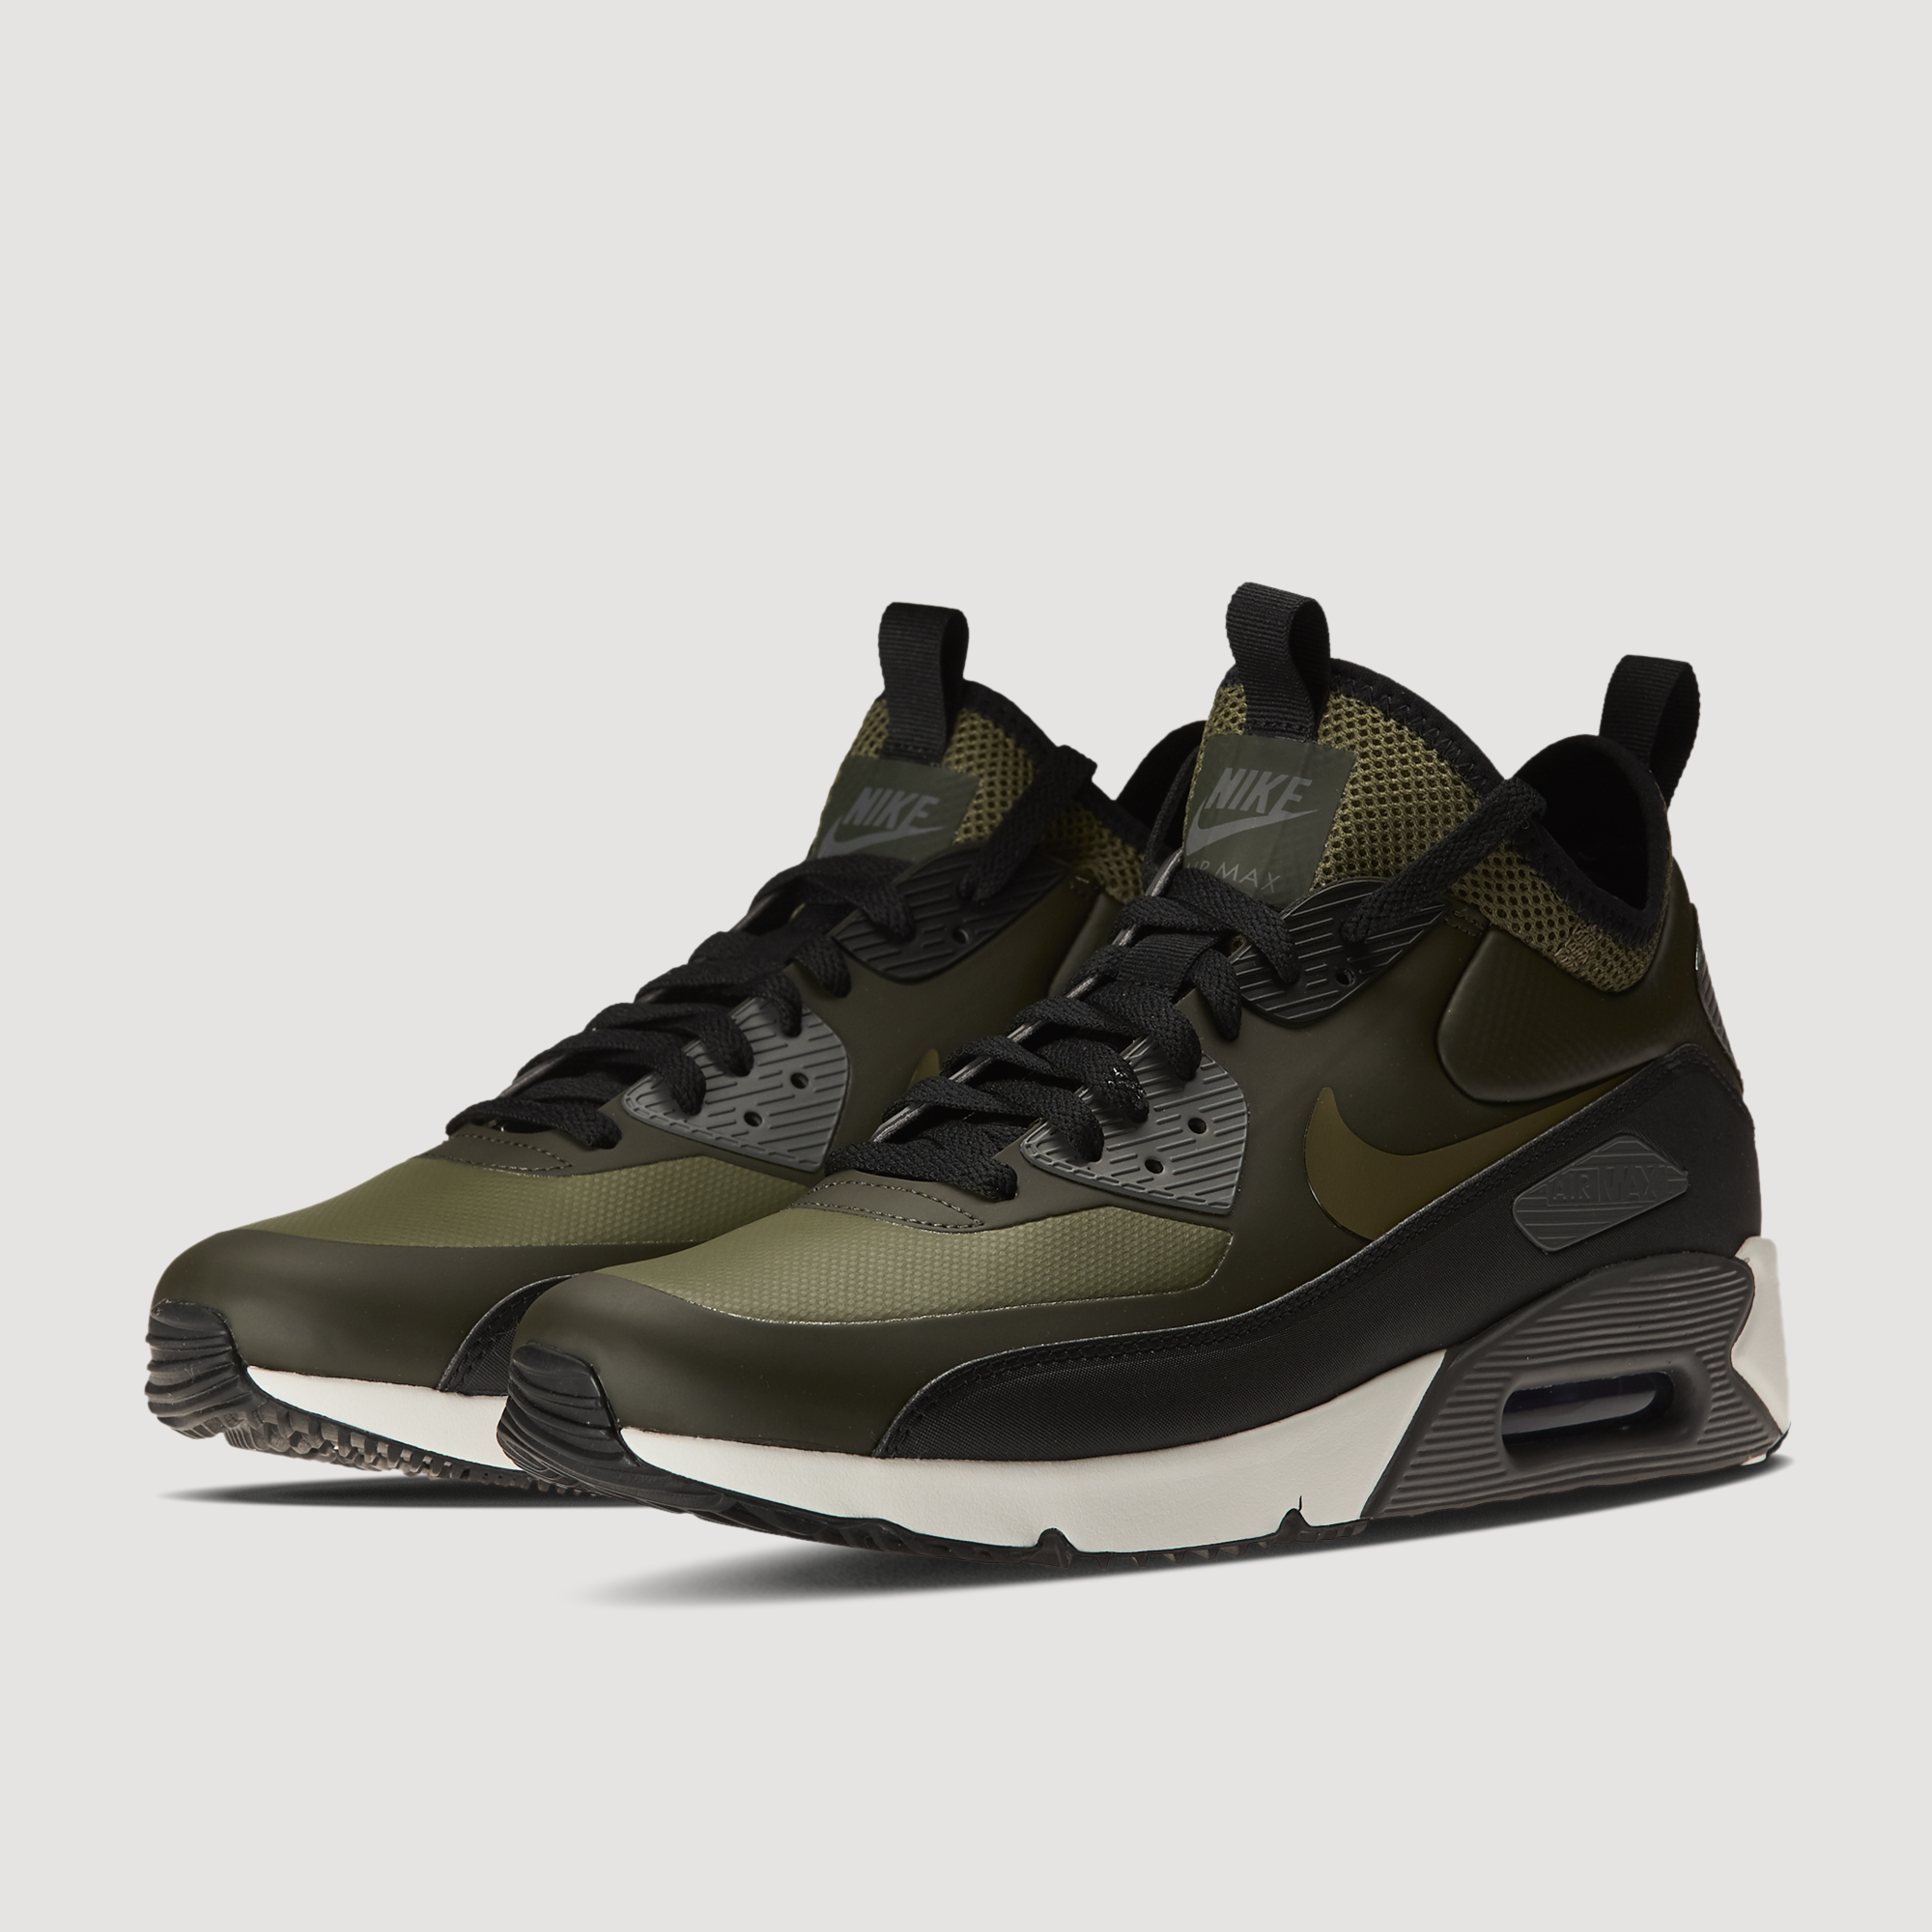 0eb67d605e Air Max 90 Ultra Mid Winter - Pig Shoes